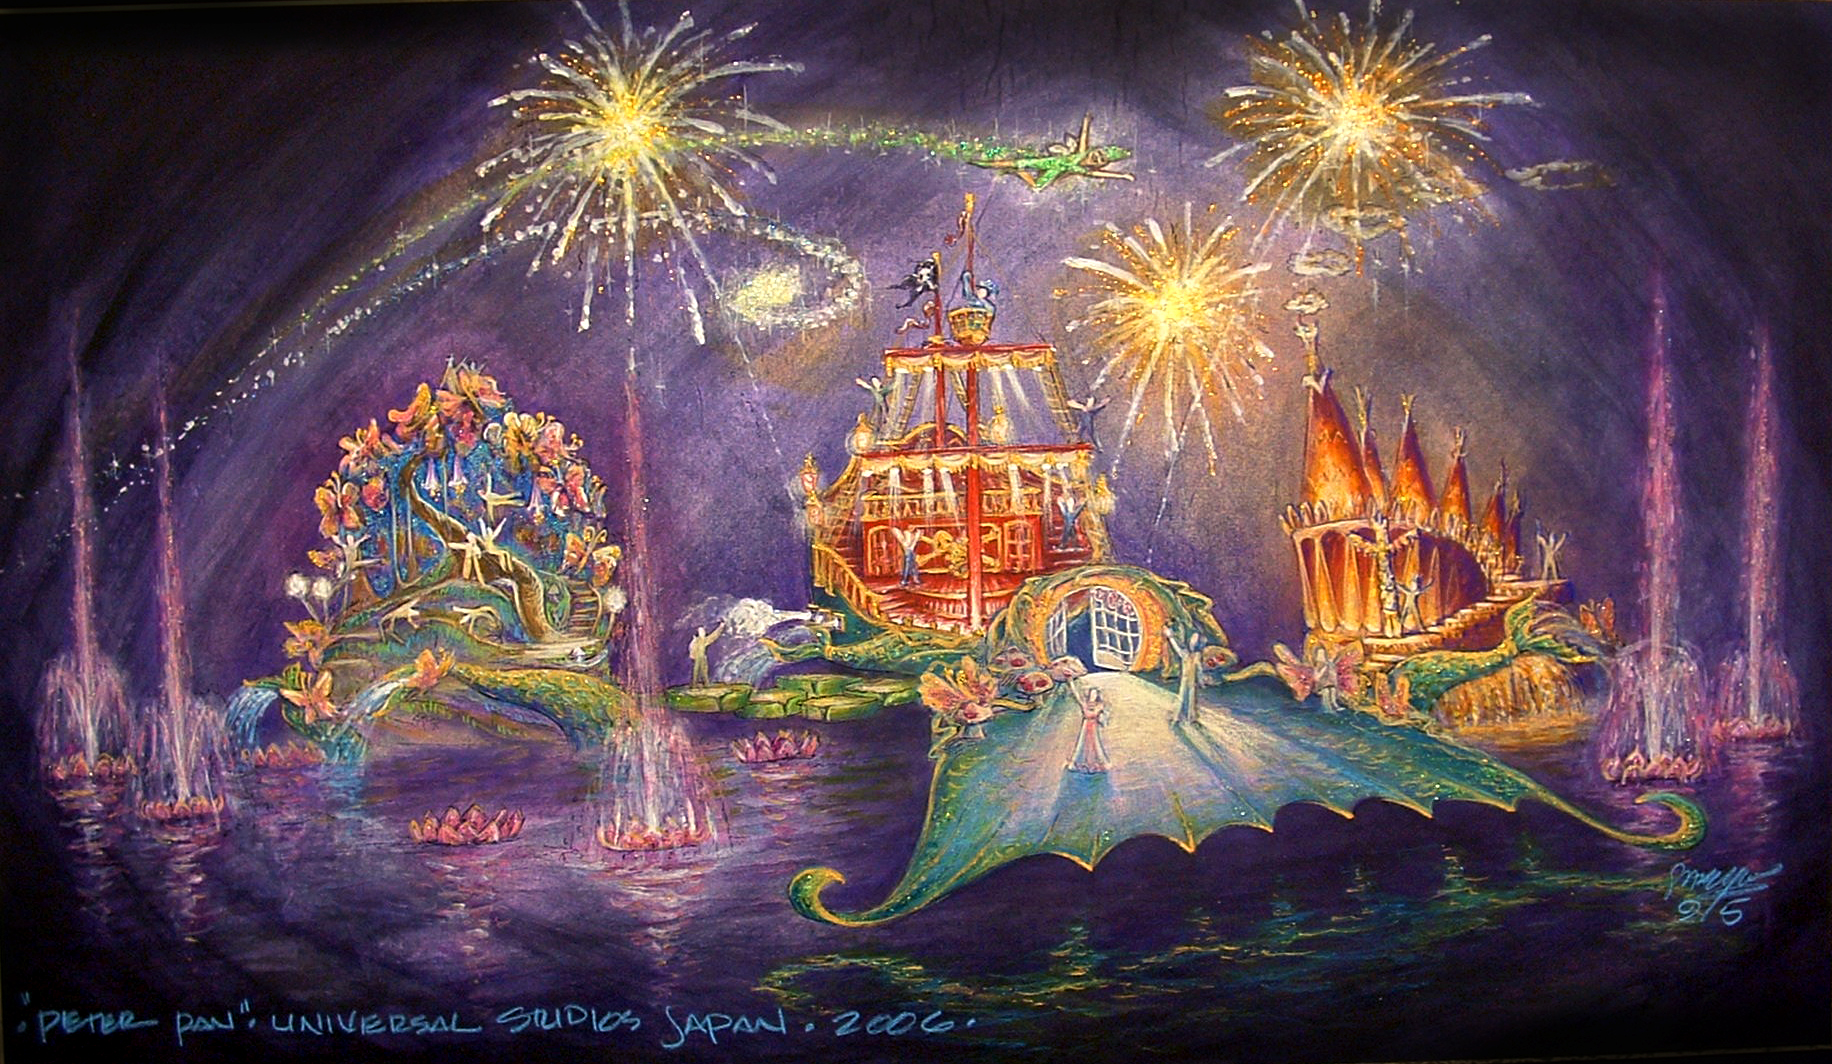 Color Key Art Rendering showing the Set on the Mermaid Lagoon for Peter Pan's Neverland. Rendering by Stanley A. Meyer